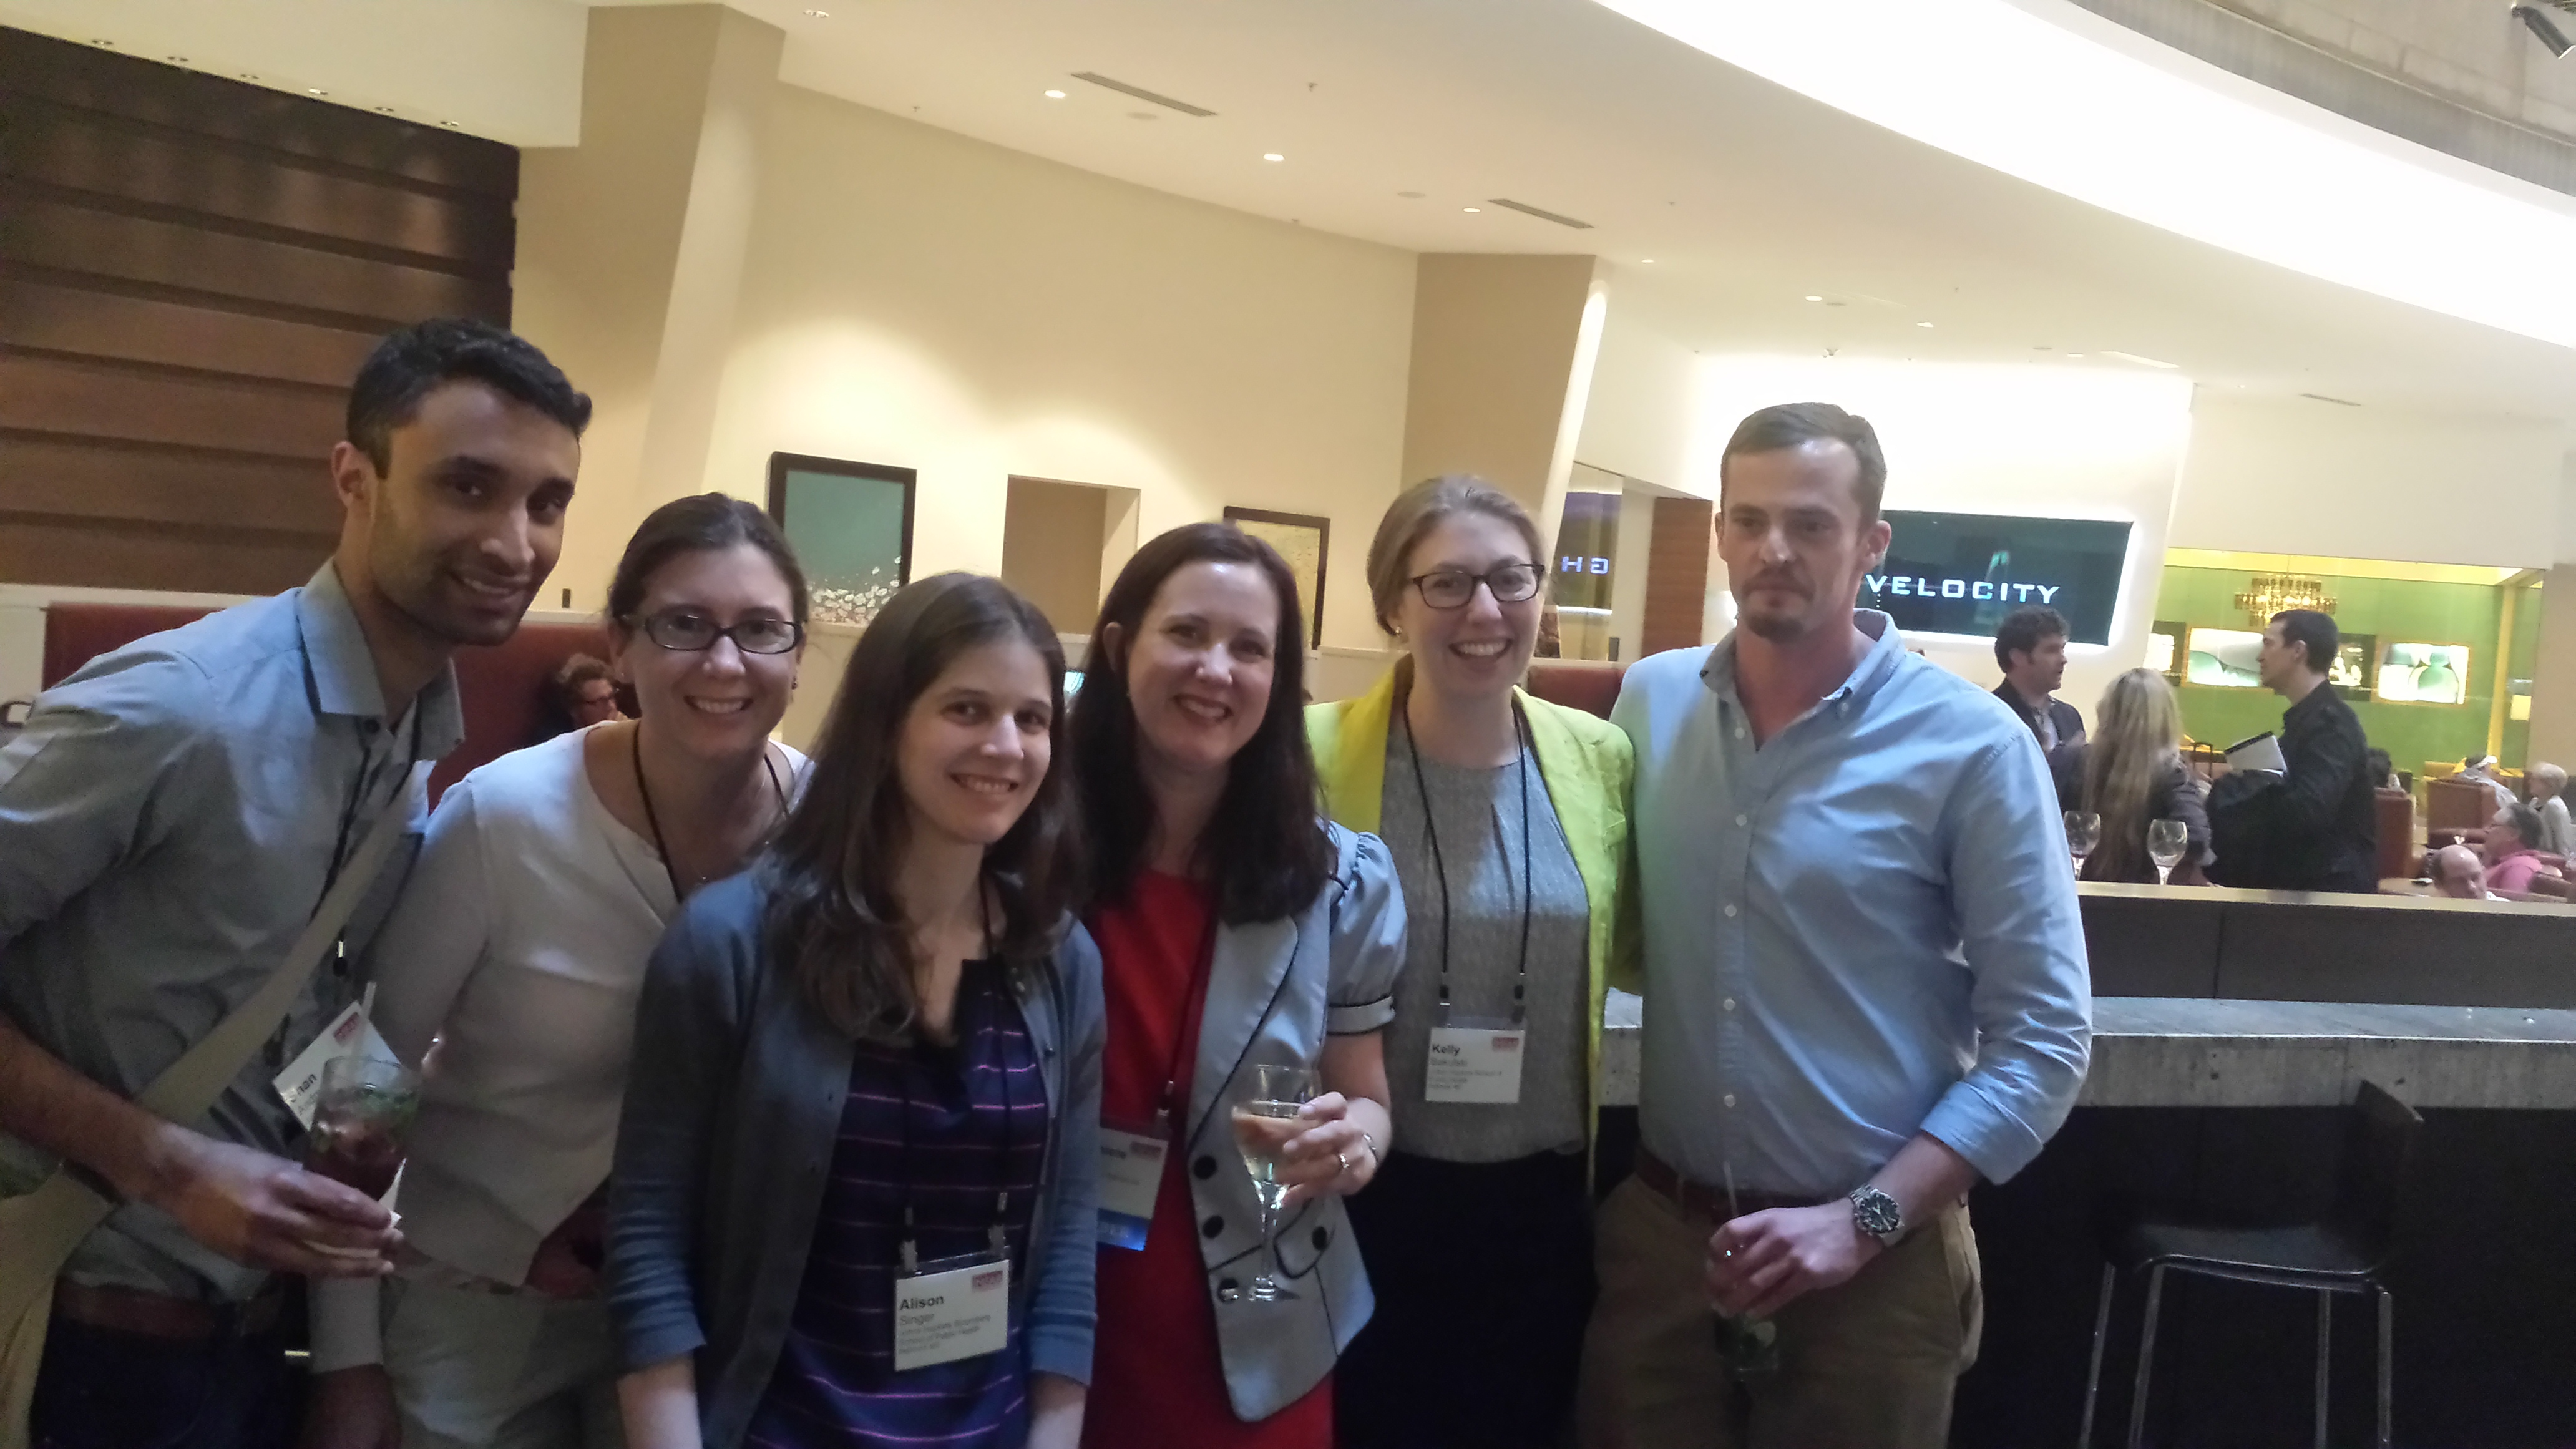 Shan Andrews, Kelly Bakulski, Alison Singer, Dani Fallin, Chris Ladd-Acosta and Jason Feinberg attended IMFAR 2014, the International Meeting For Autism Research.